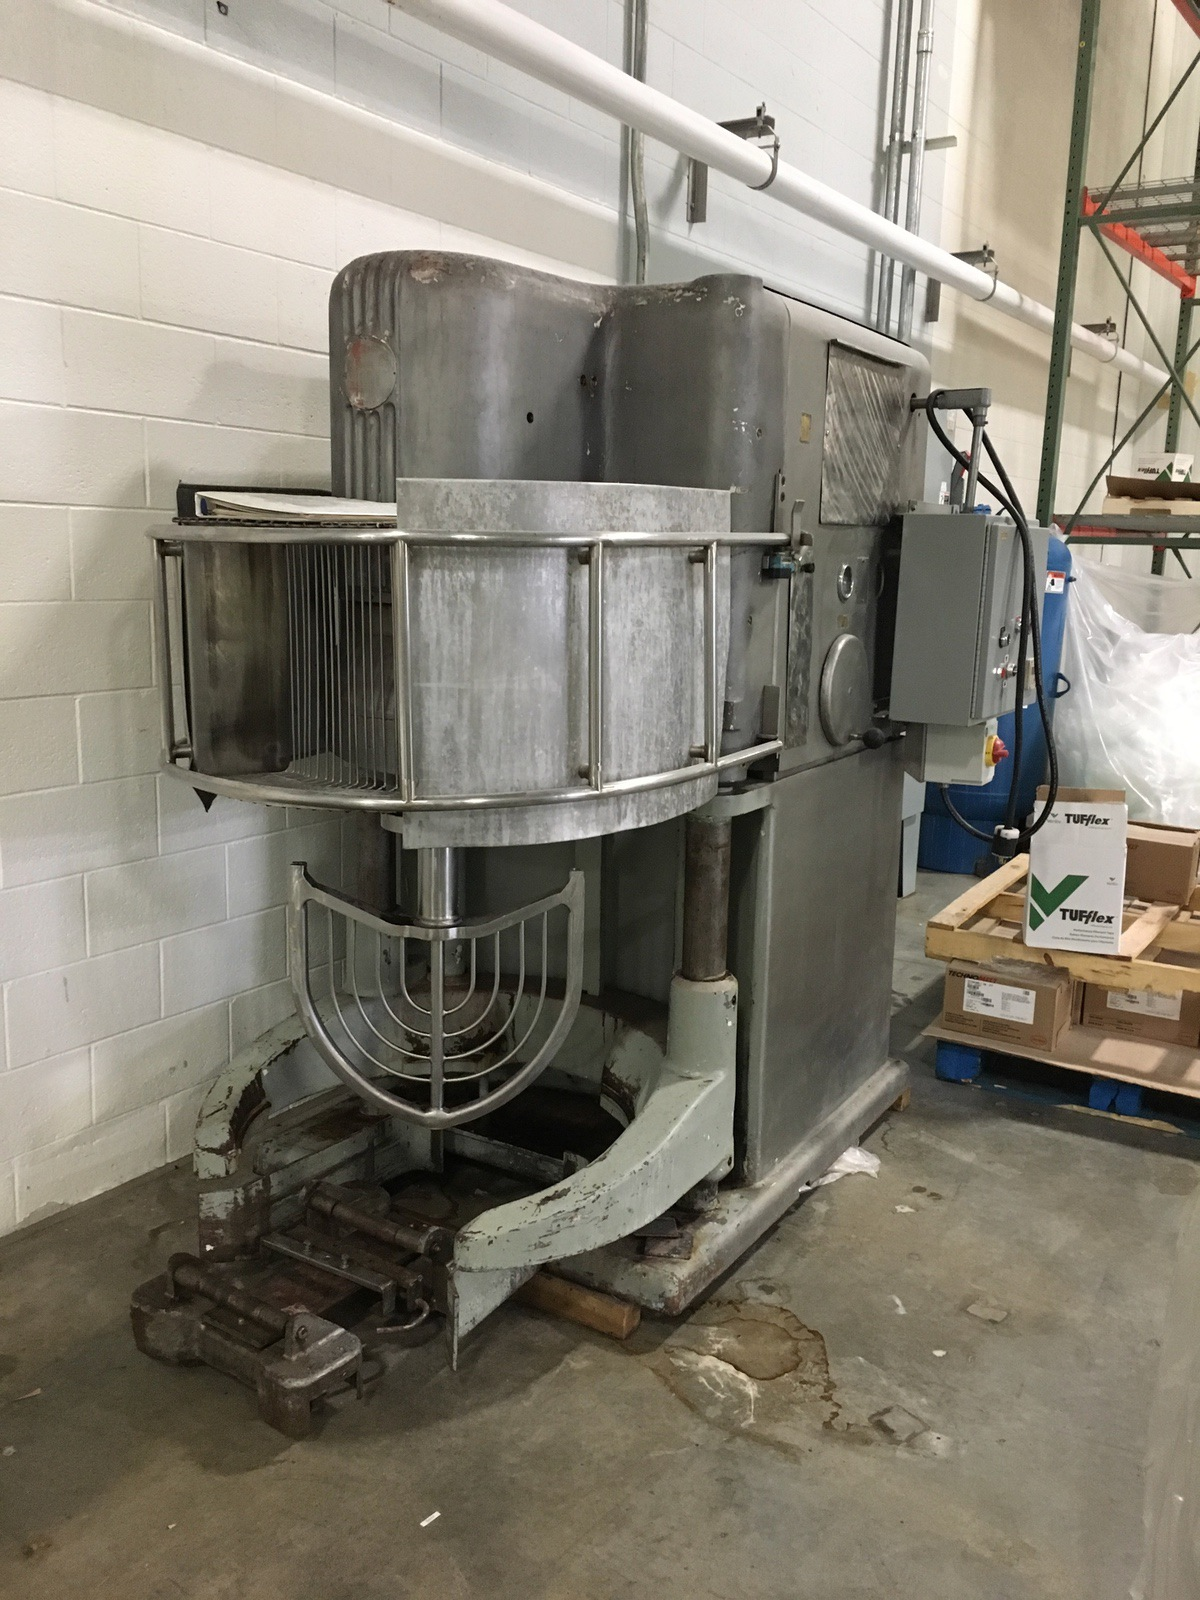 Lot 27A - AMF Mixer (Inspection By Appointment Only) | Insp by Appt | Rig Fee: 400